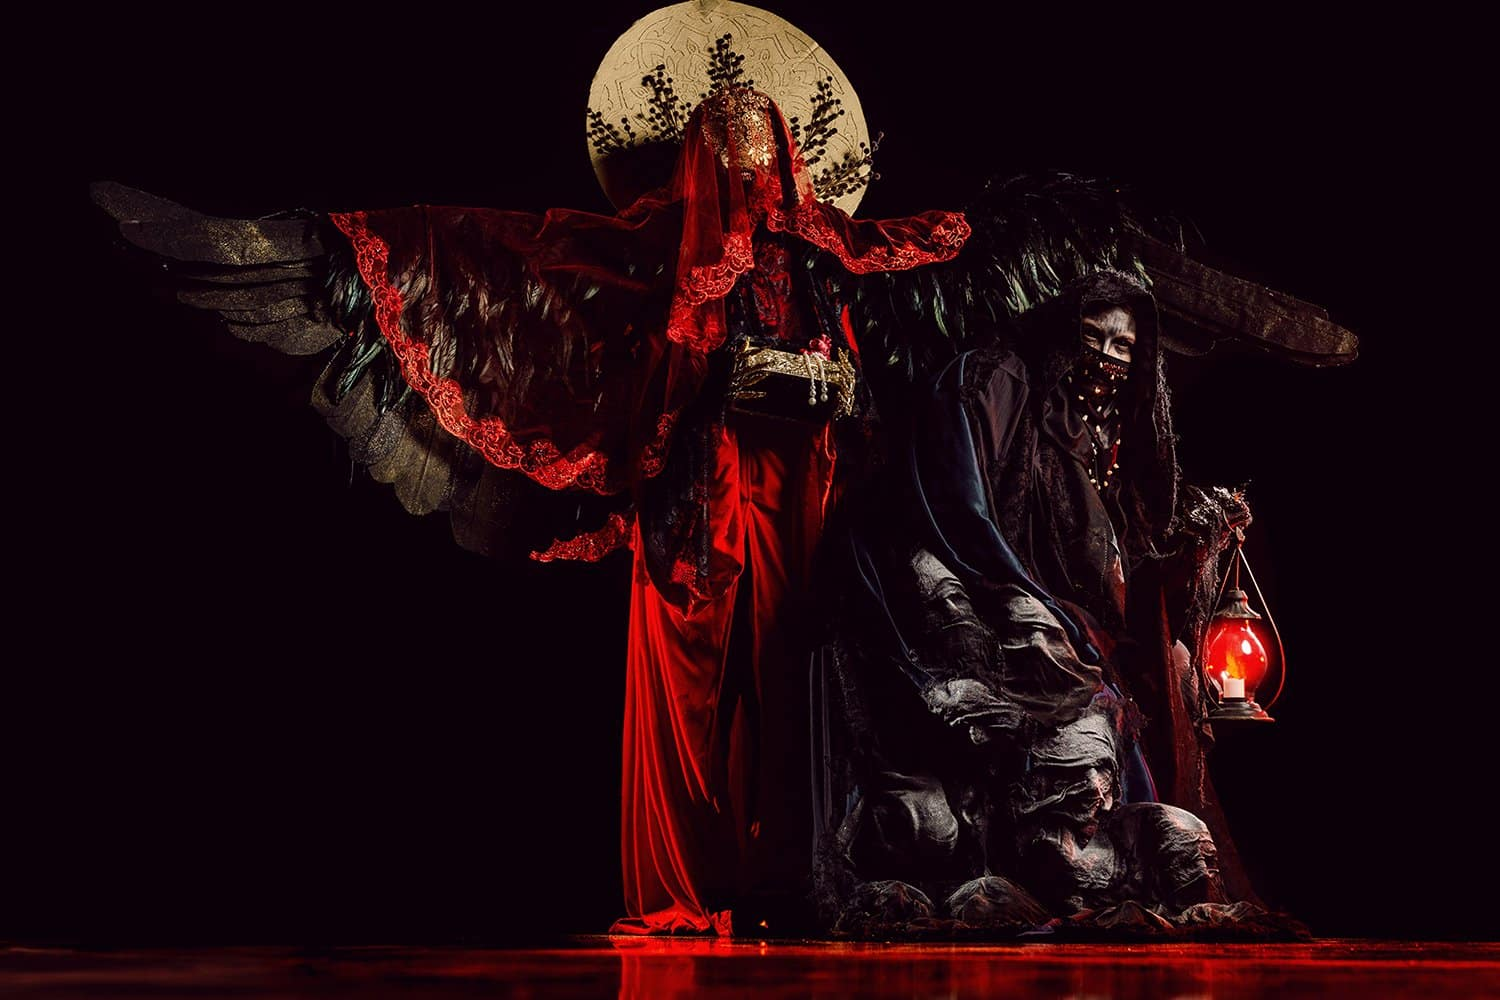 creepy costumes inspired by Greek mythology at Sidney Berne Davis Arts Center